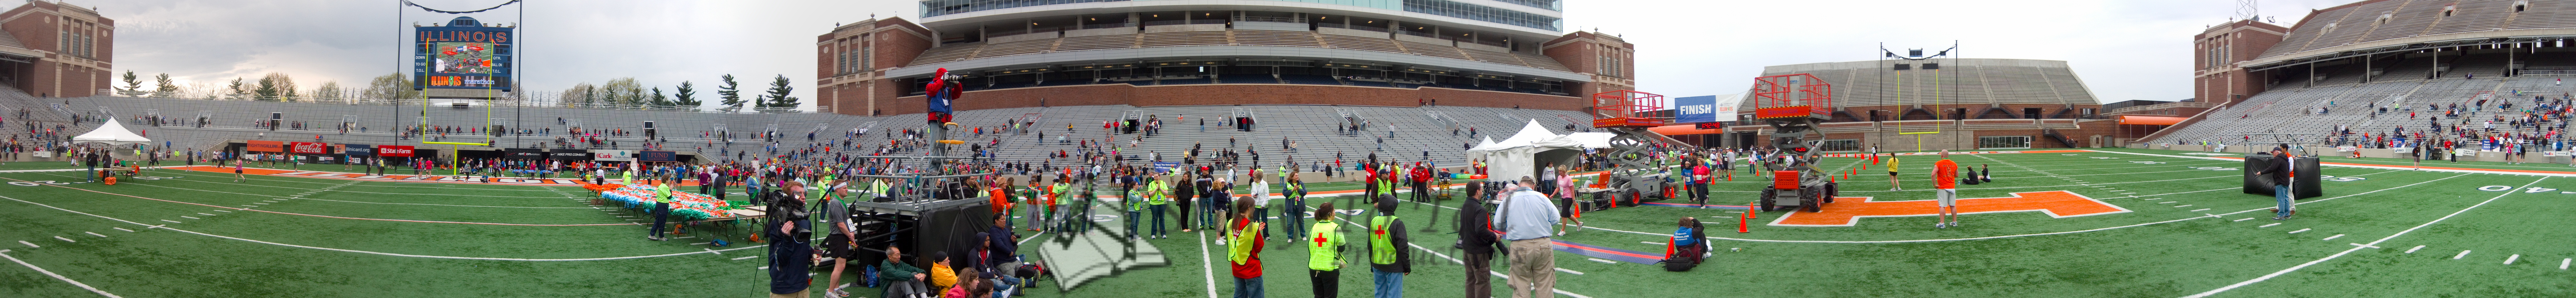 p112-1-p112-8half  Finish Time 1:42:48 Illinois Marathon 2011 Memorial Stadium Finish Line